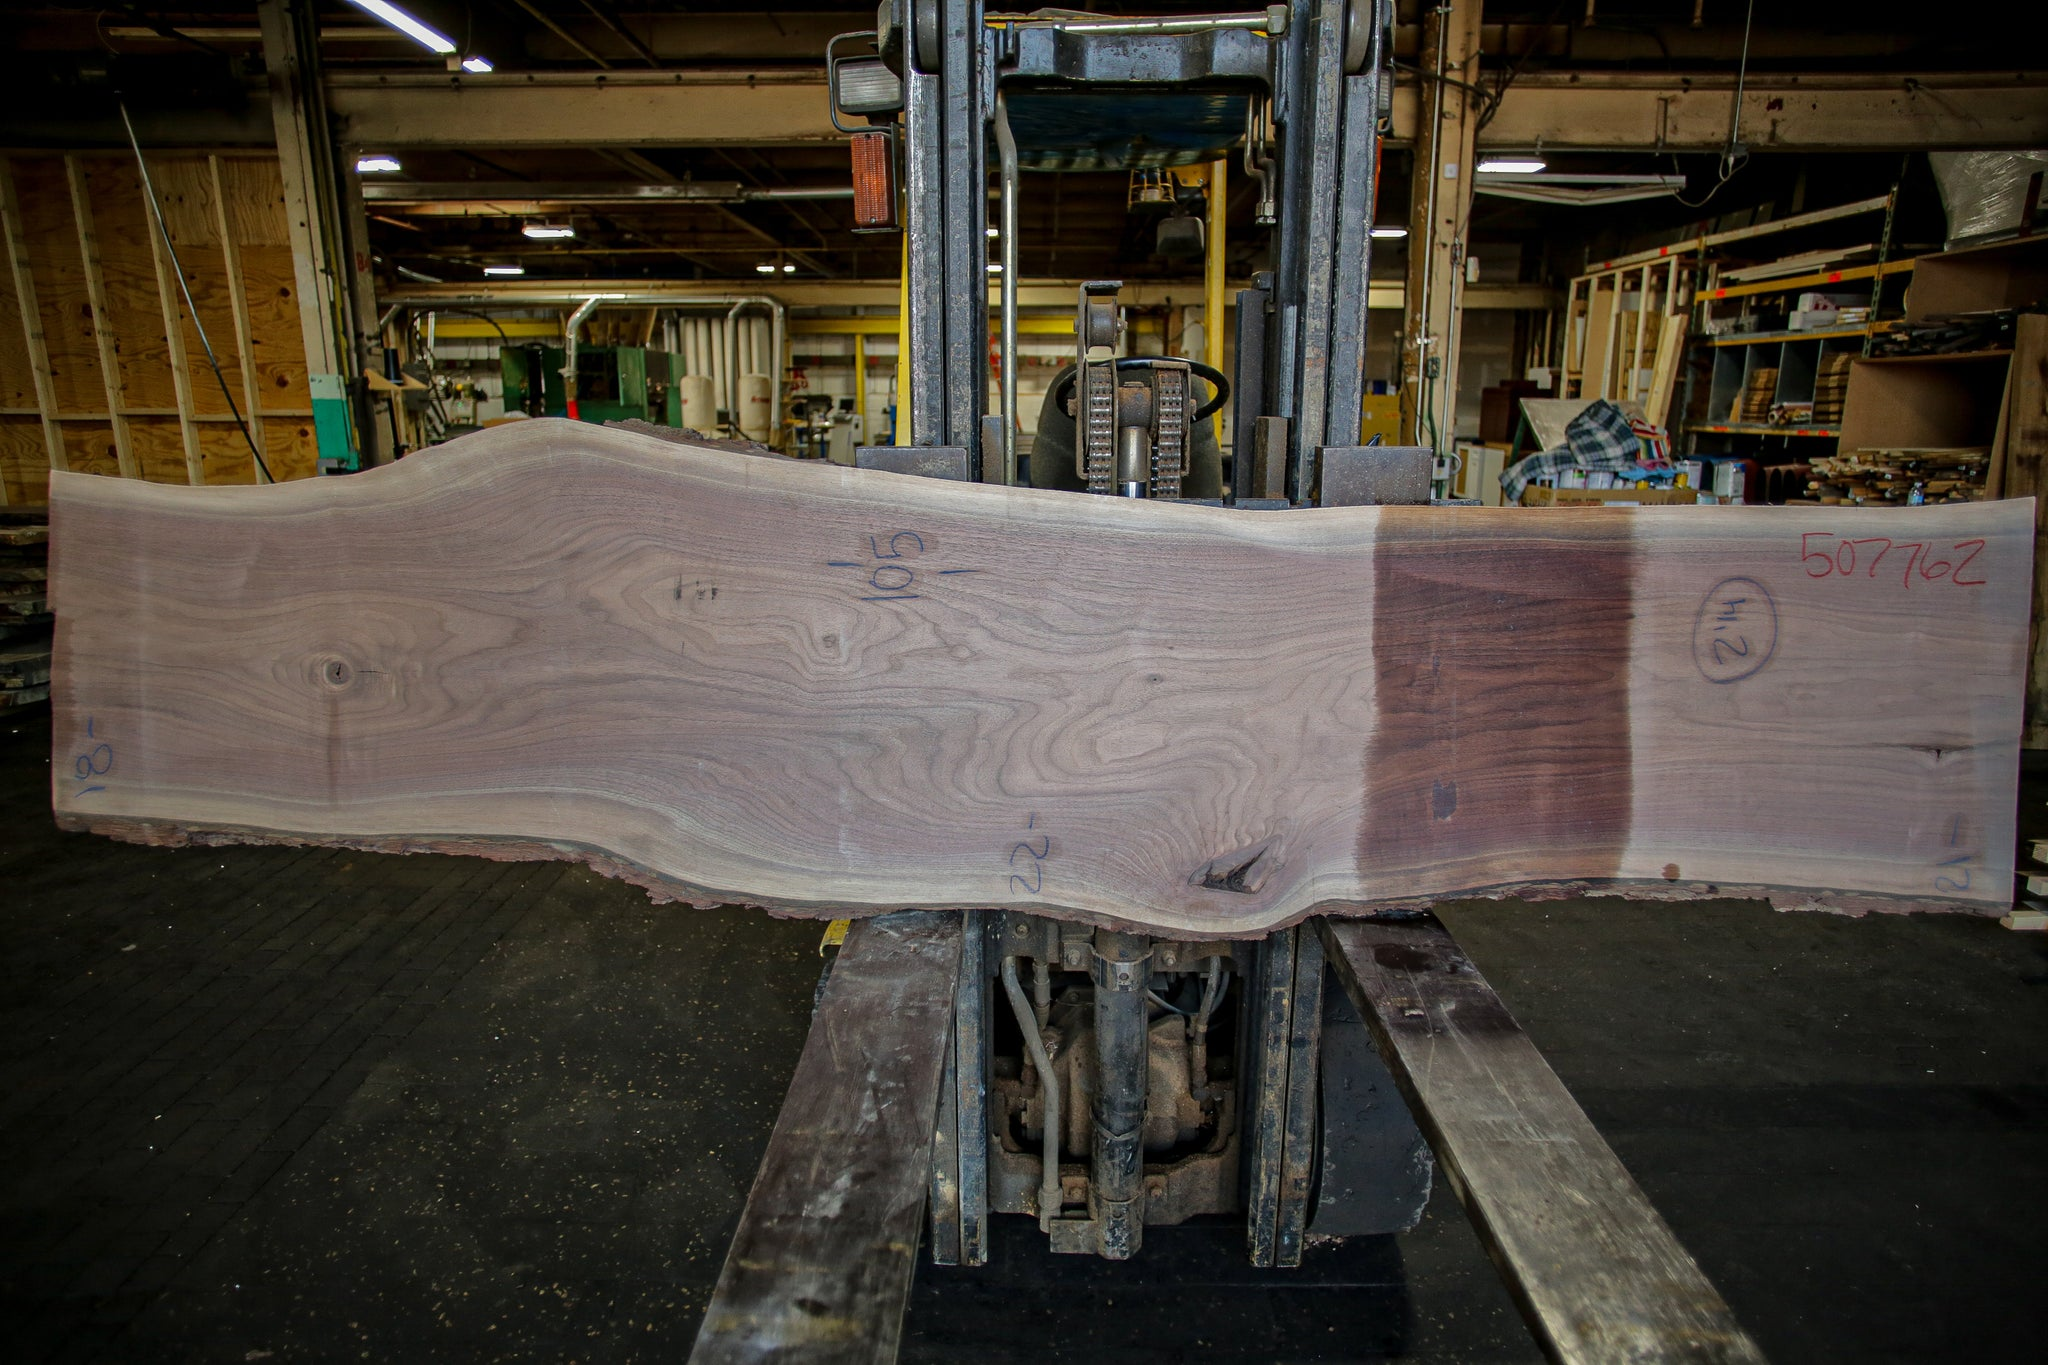 Walnut Live Edge Slab 507762